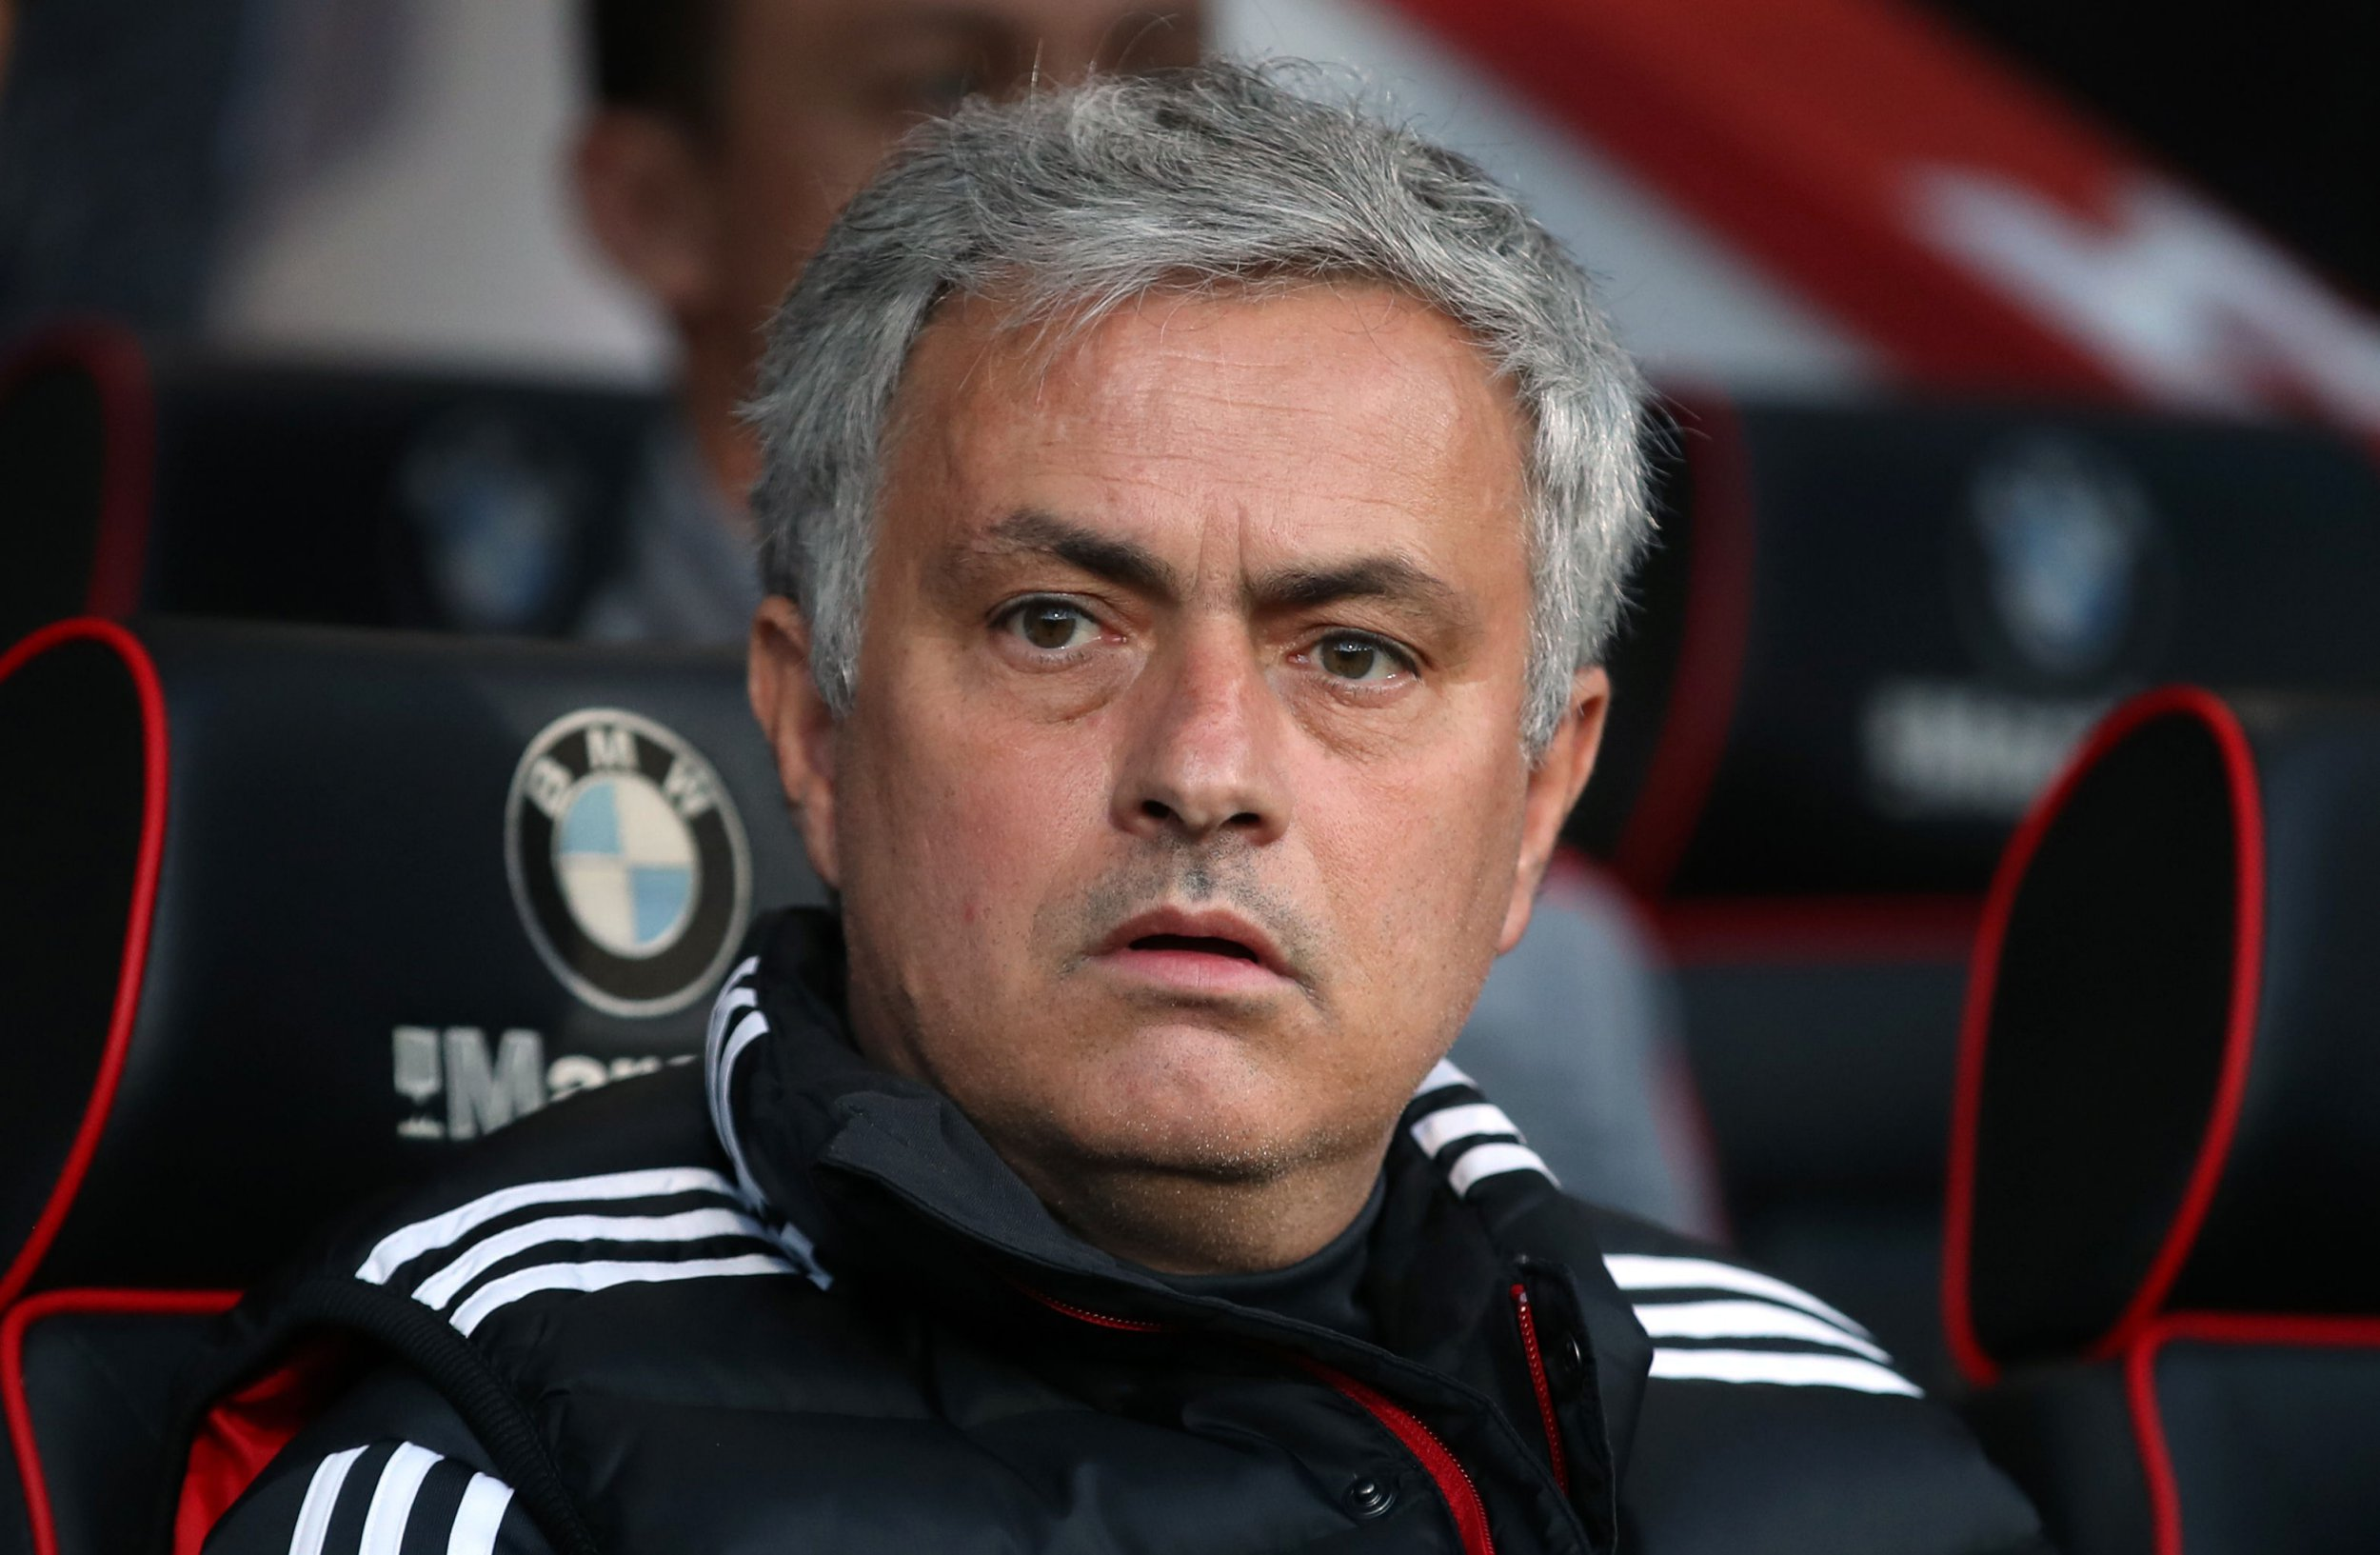 Jose Mourinho tells Manchester United to sign Juventus defender Alex Sandro as Luke Shaw replacement